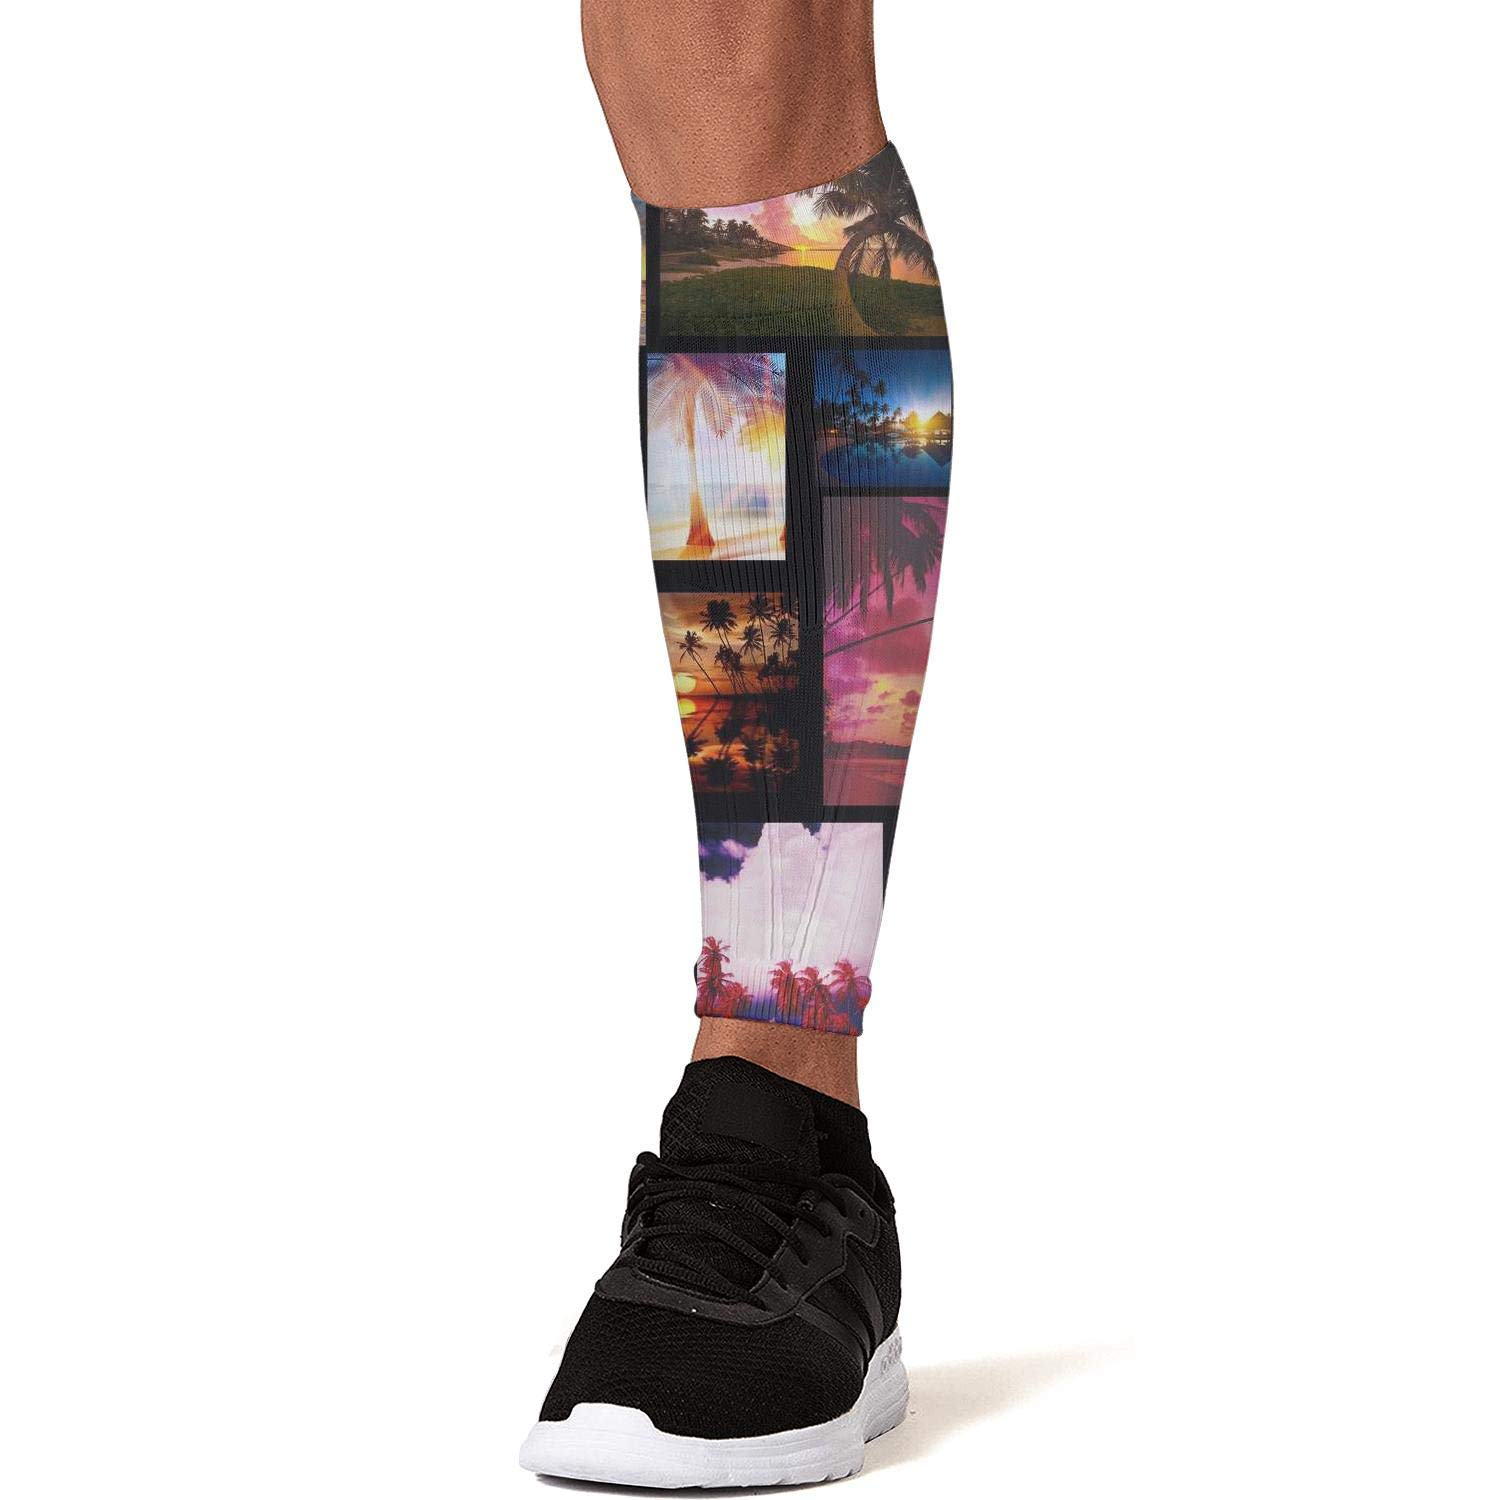 Smilelolly Tropical Coconut Palm Trees Beach Calf Compression Sleeves Helps Calf Guard Leg Sleeves for Men Women